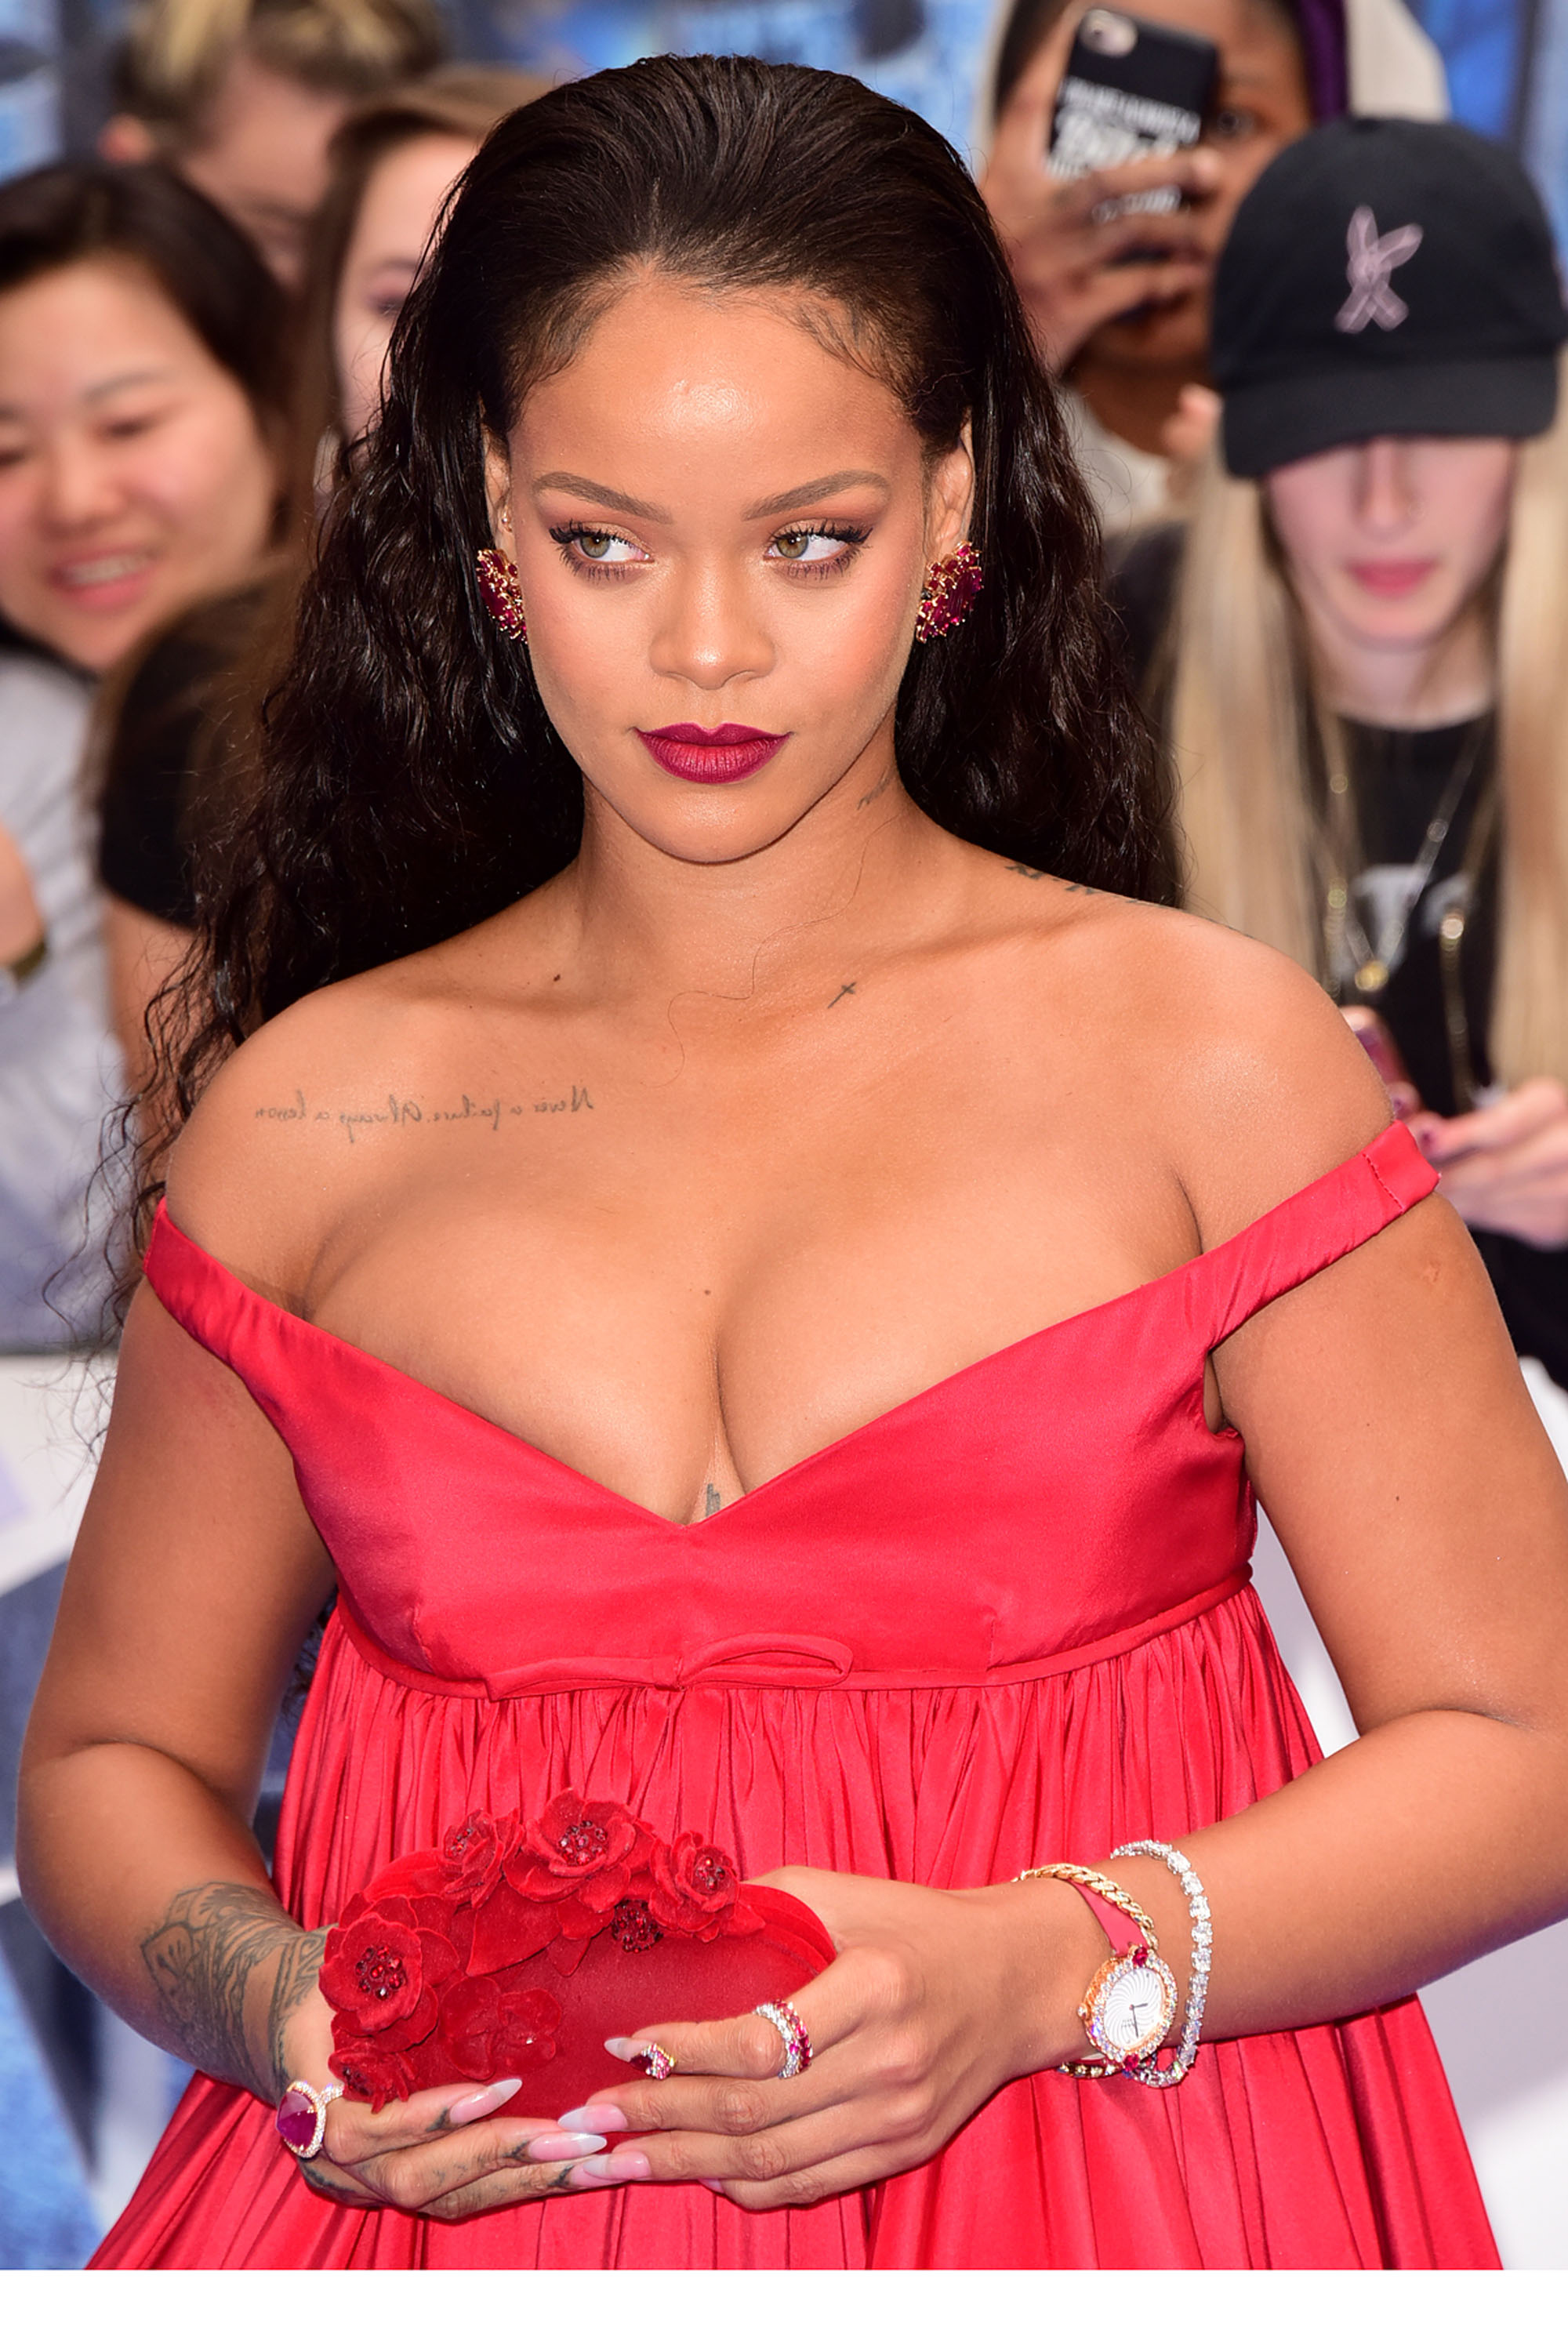 """In news that probably won't shock anyone, fashion's favourite pop star, Rihanna, looks set to release her own line of lingerie.<br> <br> According to <em><a href=""""http://wwd.com/fashion-news/fashion-scoops/source-rihanna-techstyle-lingerie-deal-1202597009/"""" target=""""_blank"""" draggable=""""false"""">Women's Wear Daily</a></em>, the singer has reportedly struck a deal with TechStyle Fashion Group, the company behind Fabletics and ShoeDazle, to create her first-ever underwear line. <br> <br> Rhianna is yet to comment on the news, but according to reports the Barbadian-born star has been chatting to the fashion giant for over a year. <br> <br> TechStyle is known for its technology-focused approach to brand-building and has previously worked with Kate Hudson and Kim Kardashian West.<br> <br> The line will be the latest addition to Riri's fashion and beauty empire. The 30-year-old put her sartorial stamp on Puma in 2016 and launched her own beauty range, Fenty Beauty, in September last year.<br> <br> While we wait to see what the Diamonds singer puts on her own line of smalls, here are ten Rihanna-inspired bras to bring out the bad gal in you.<br>"""